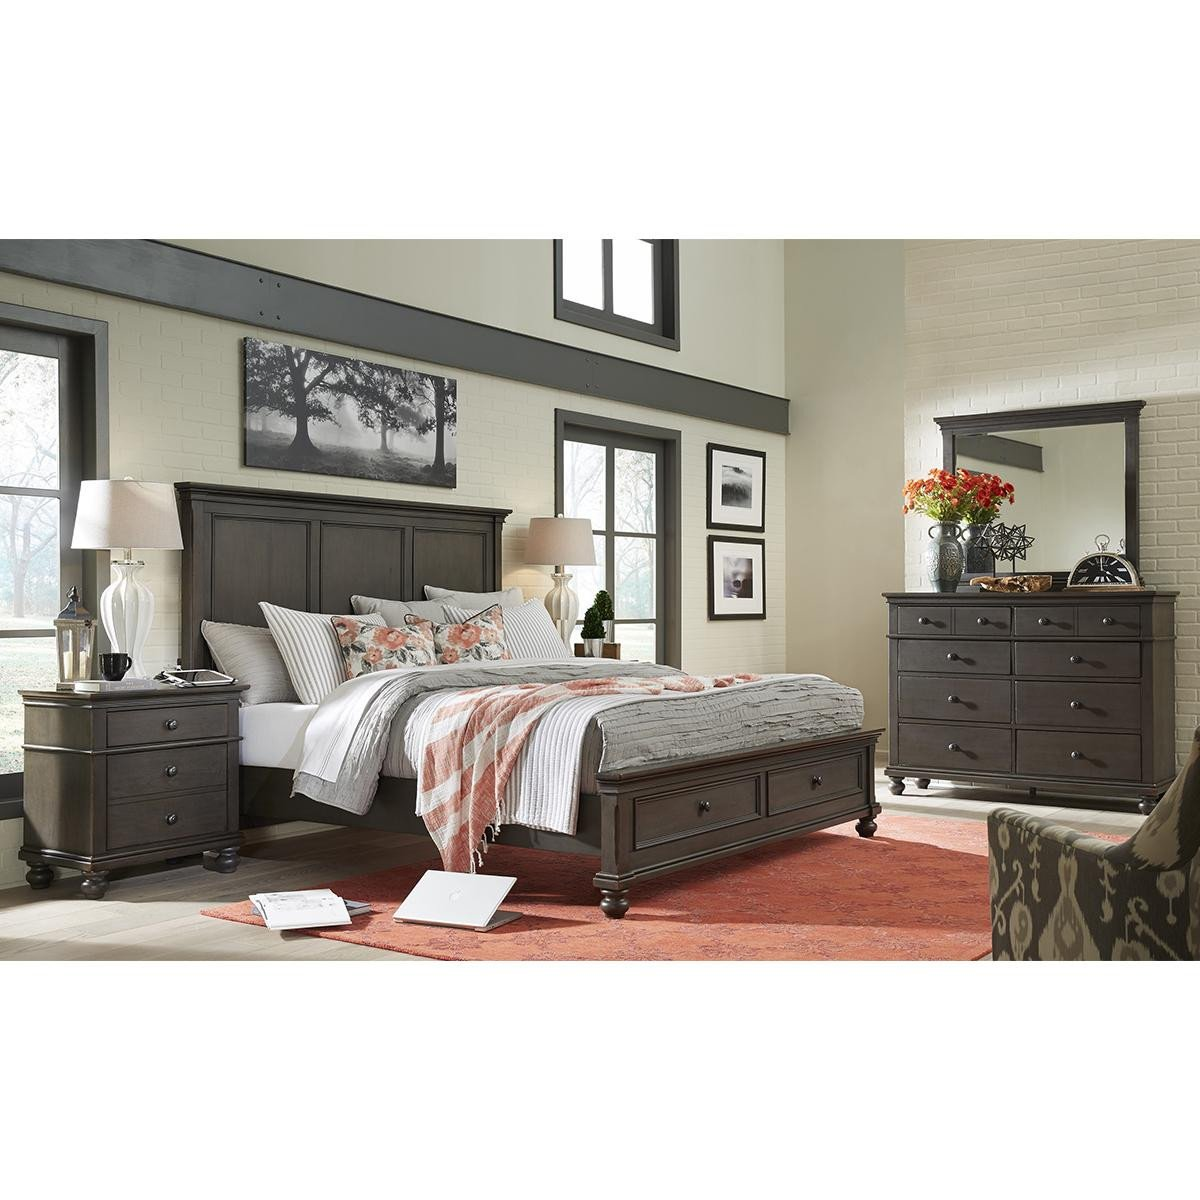 King Size Bedroom Set for Sale Unique Riva Ridge Oxford 4 Piece King Bedroom Set In Peppercorn